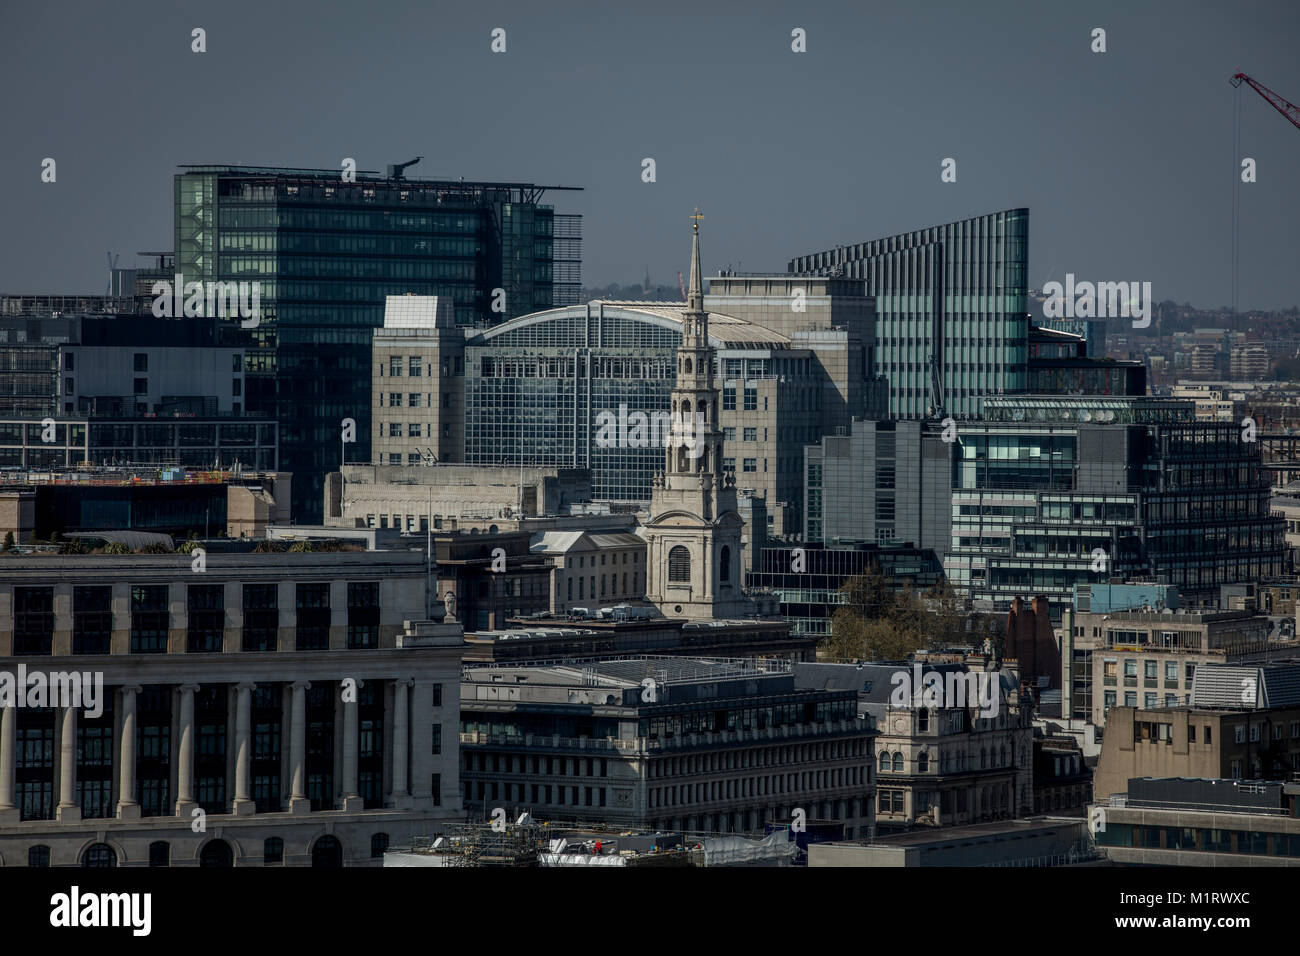 Unilever House and St Brides Church in London - Stock Image